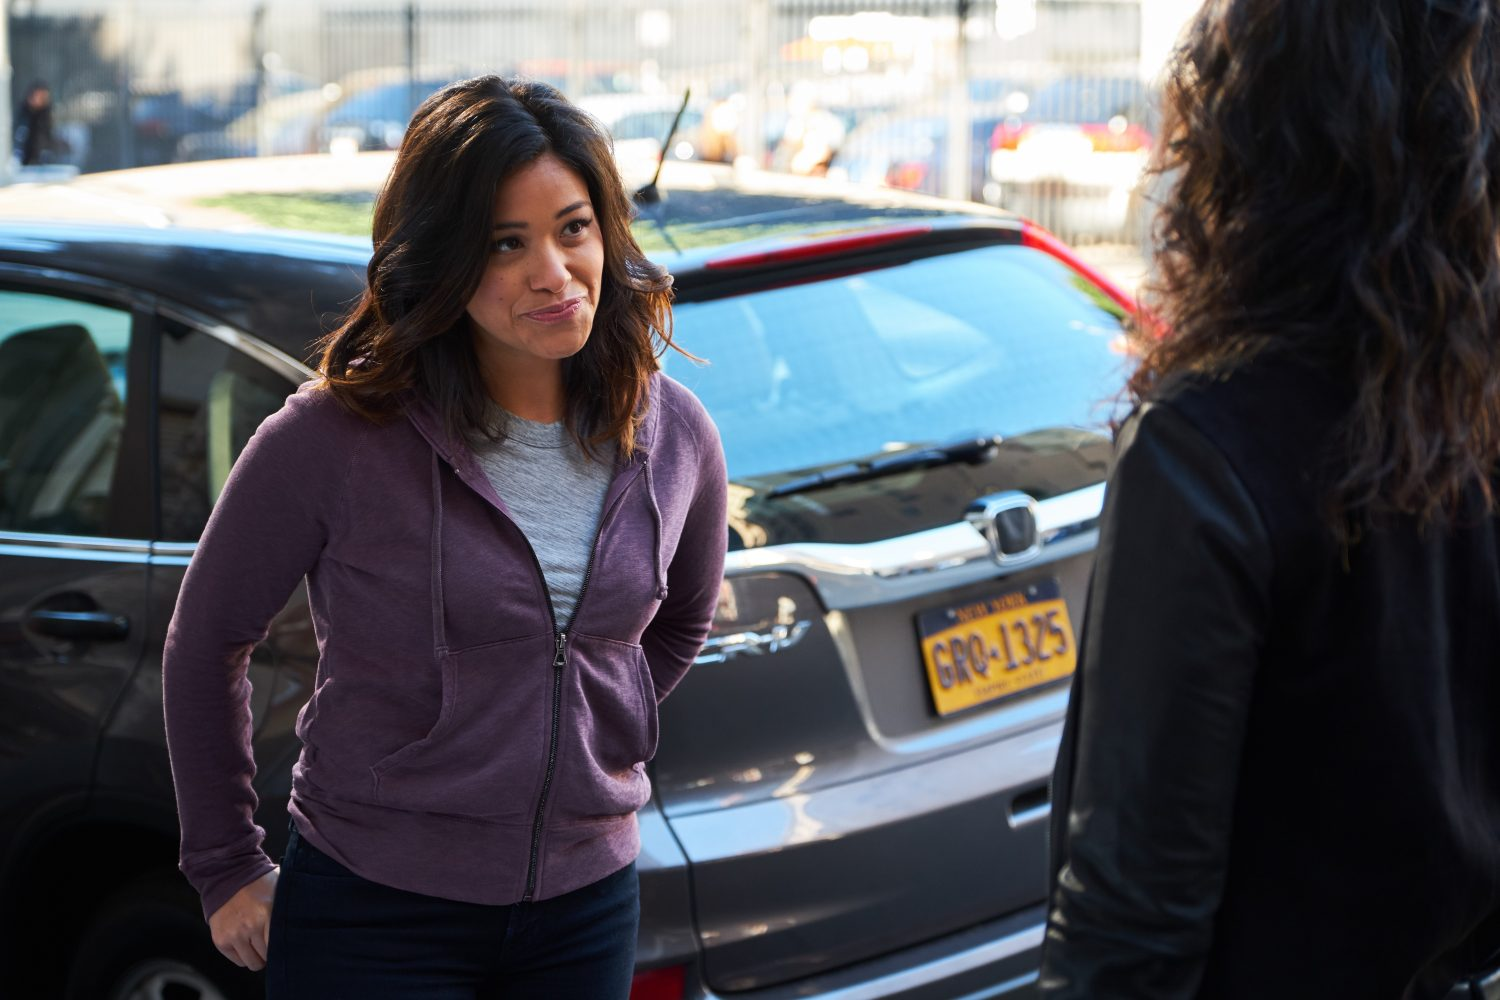 TRAILER: In 'Brooklyn Nine-Nine' Season Finale, Gina Rodriguez Stars as Rosa's Possible Love Interest